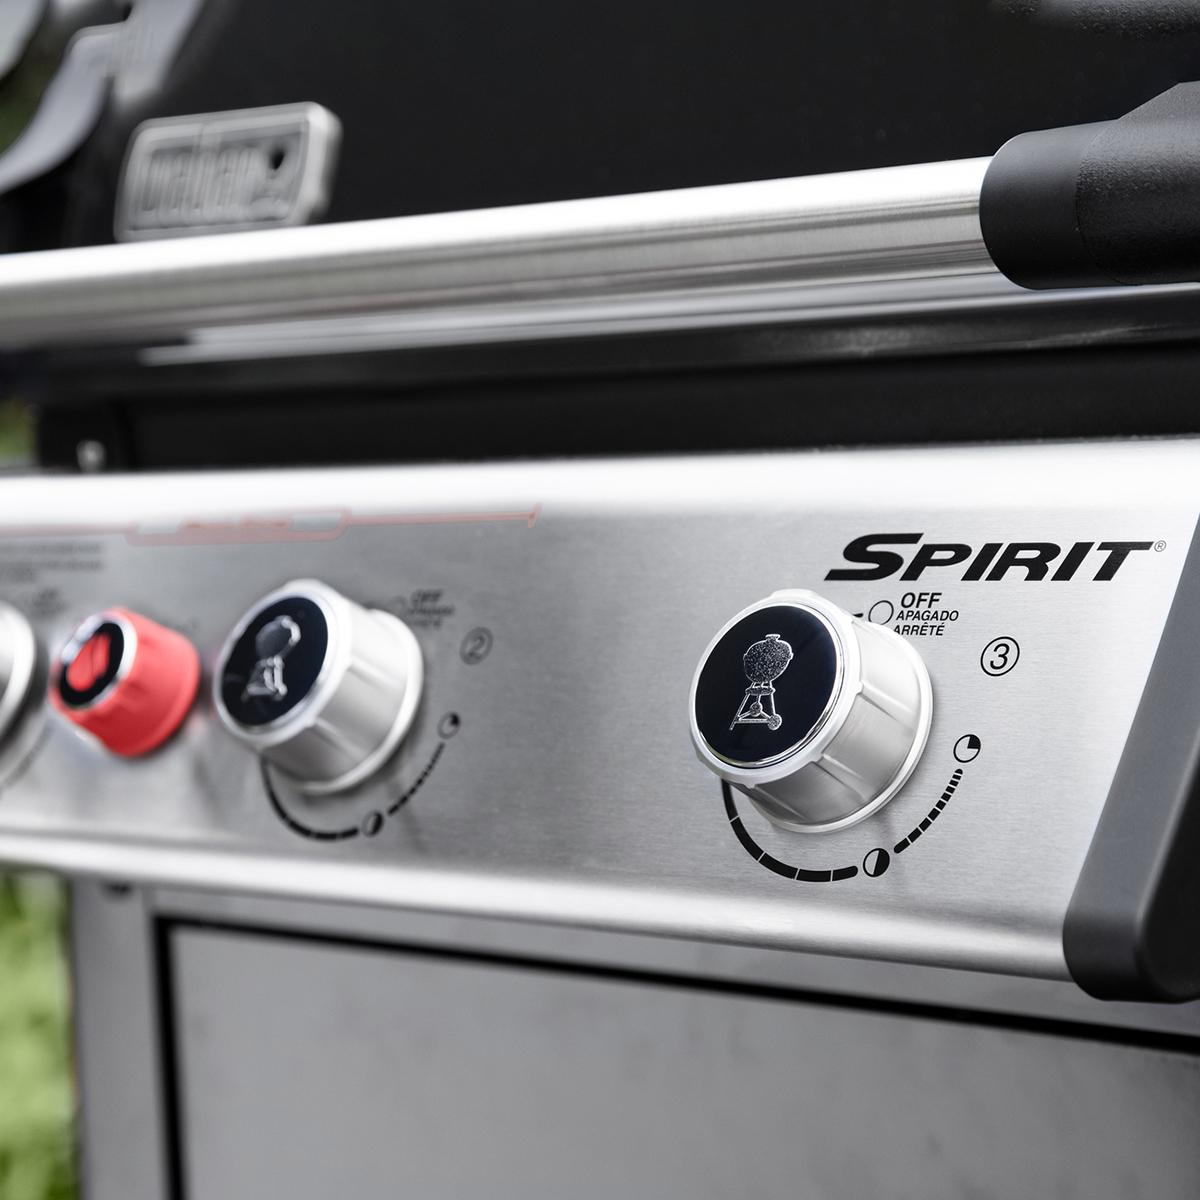 Barbecue Smart Spirit Epx-325s Gbs Barbecue A Gas